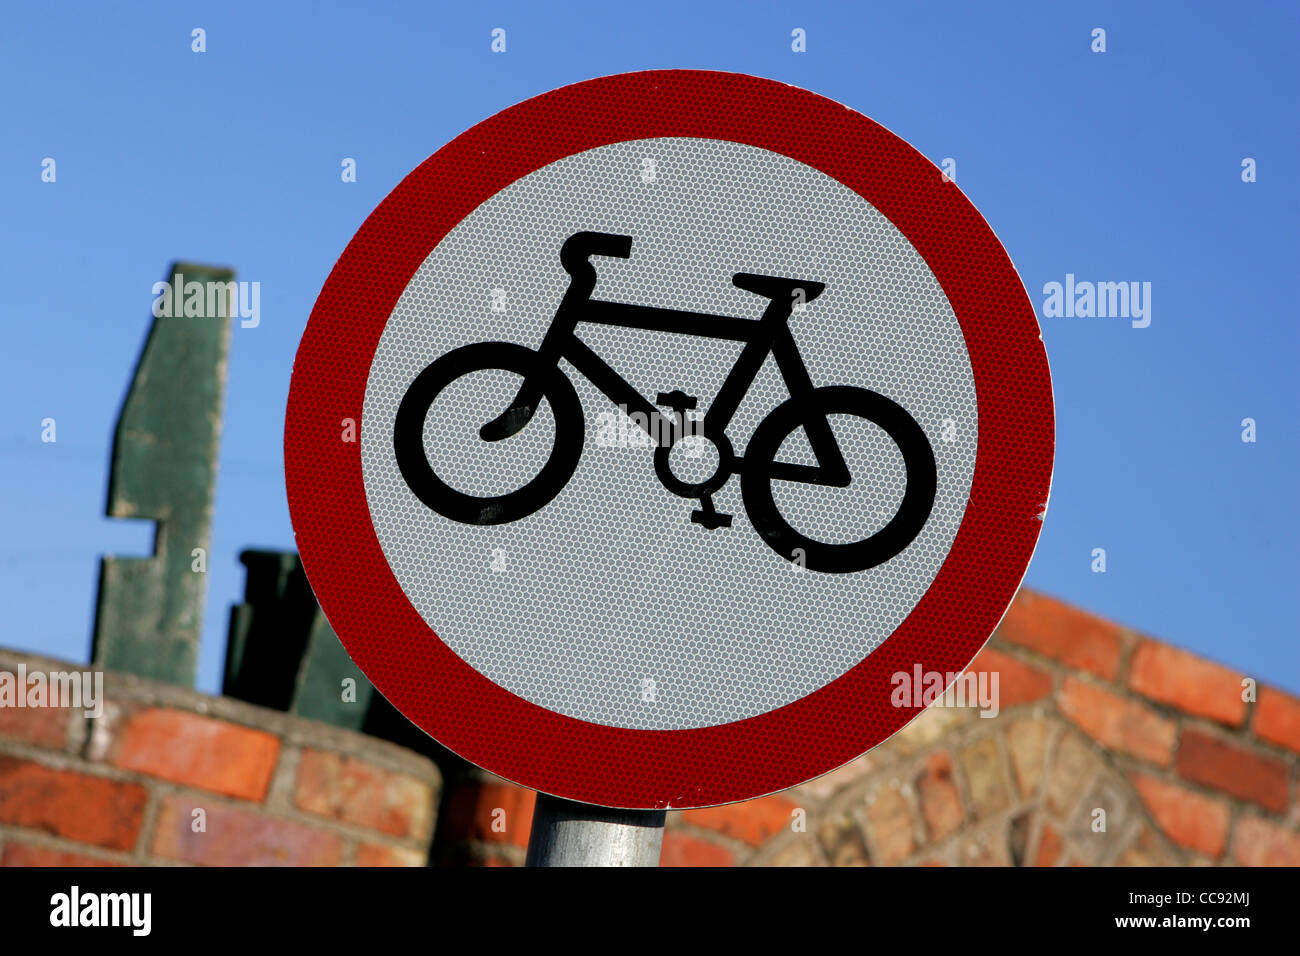 cycle sign, british highway code sign, uk - Stock Image